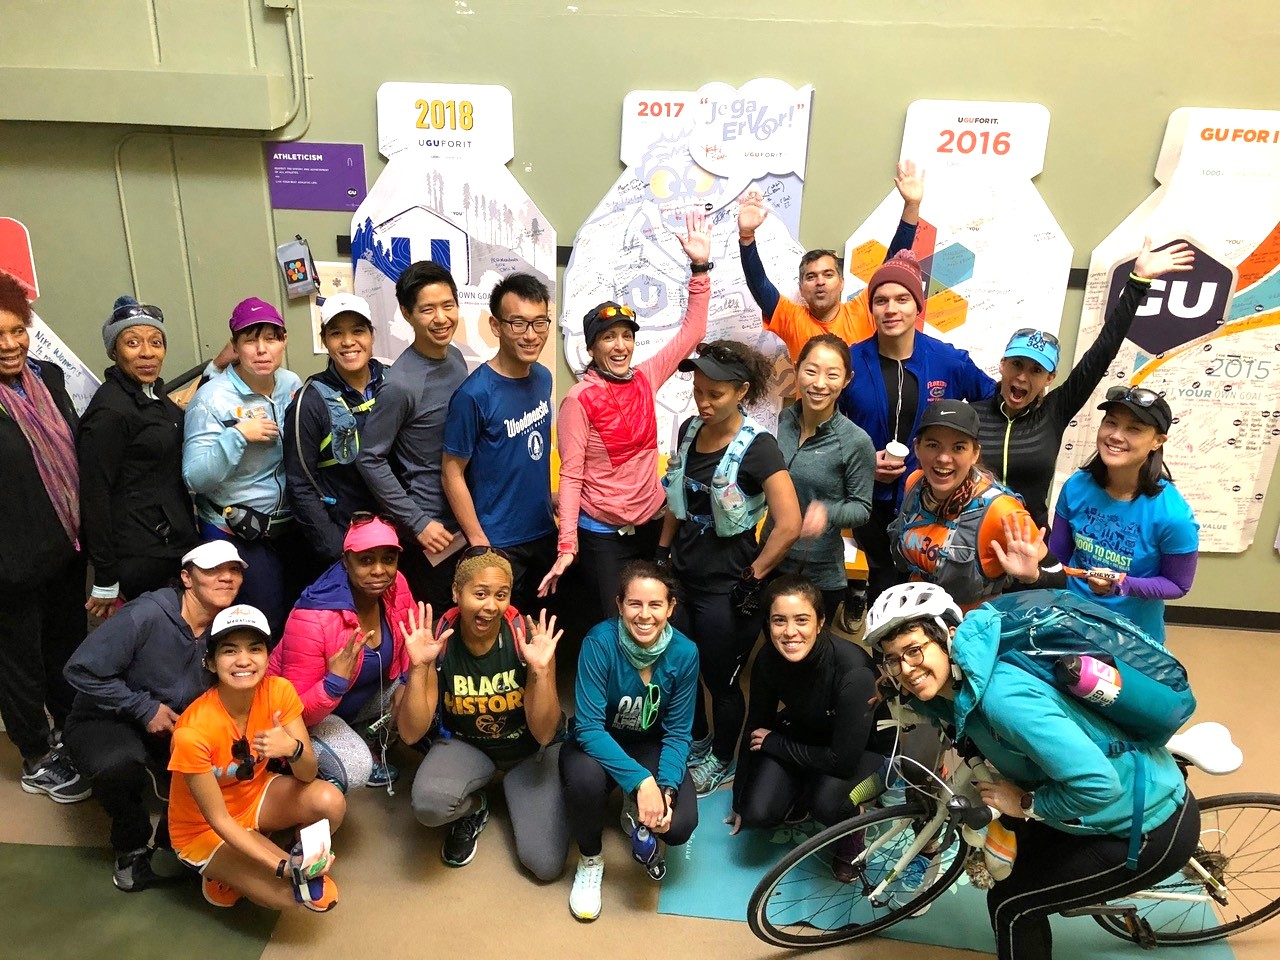 GU Energy Labs Increases Commitment to Big Sur Marathon Foundation